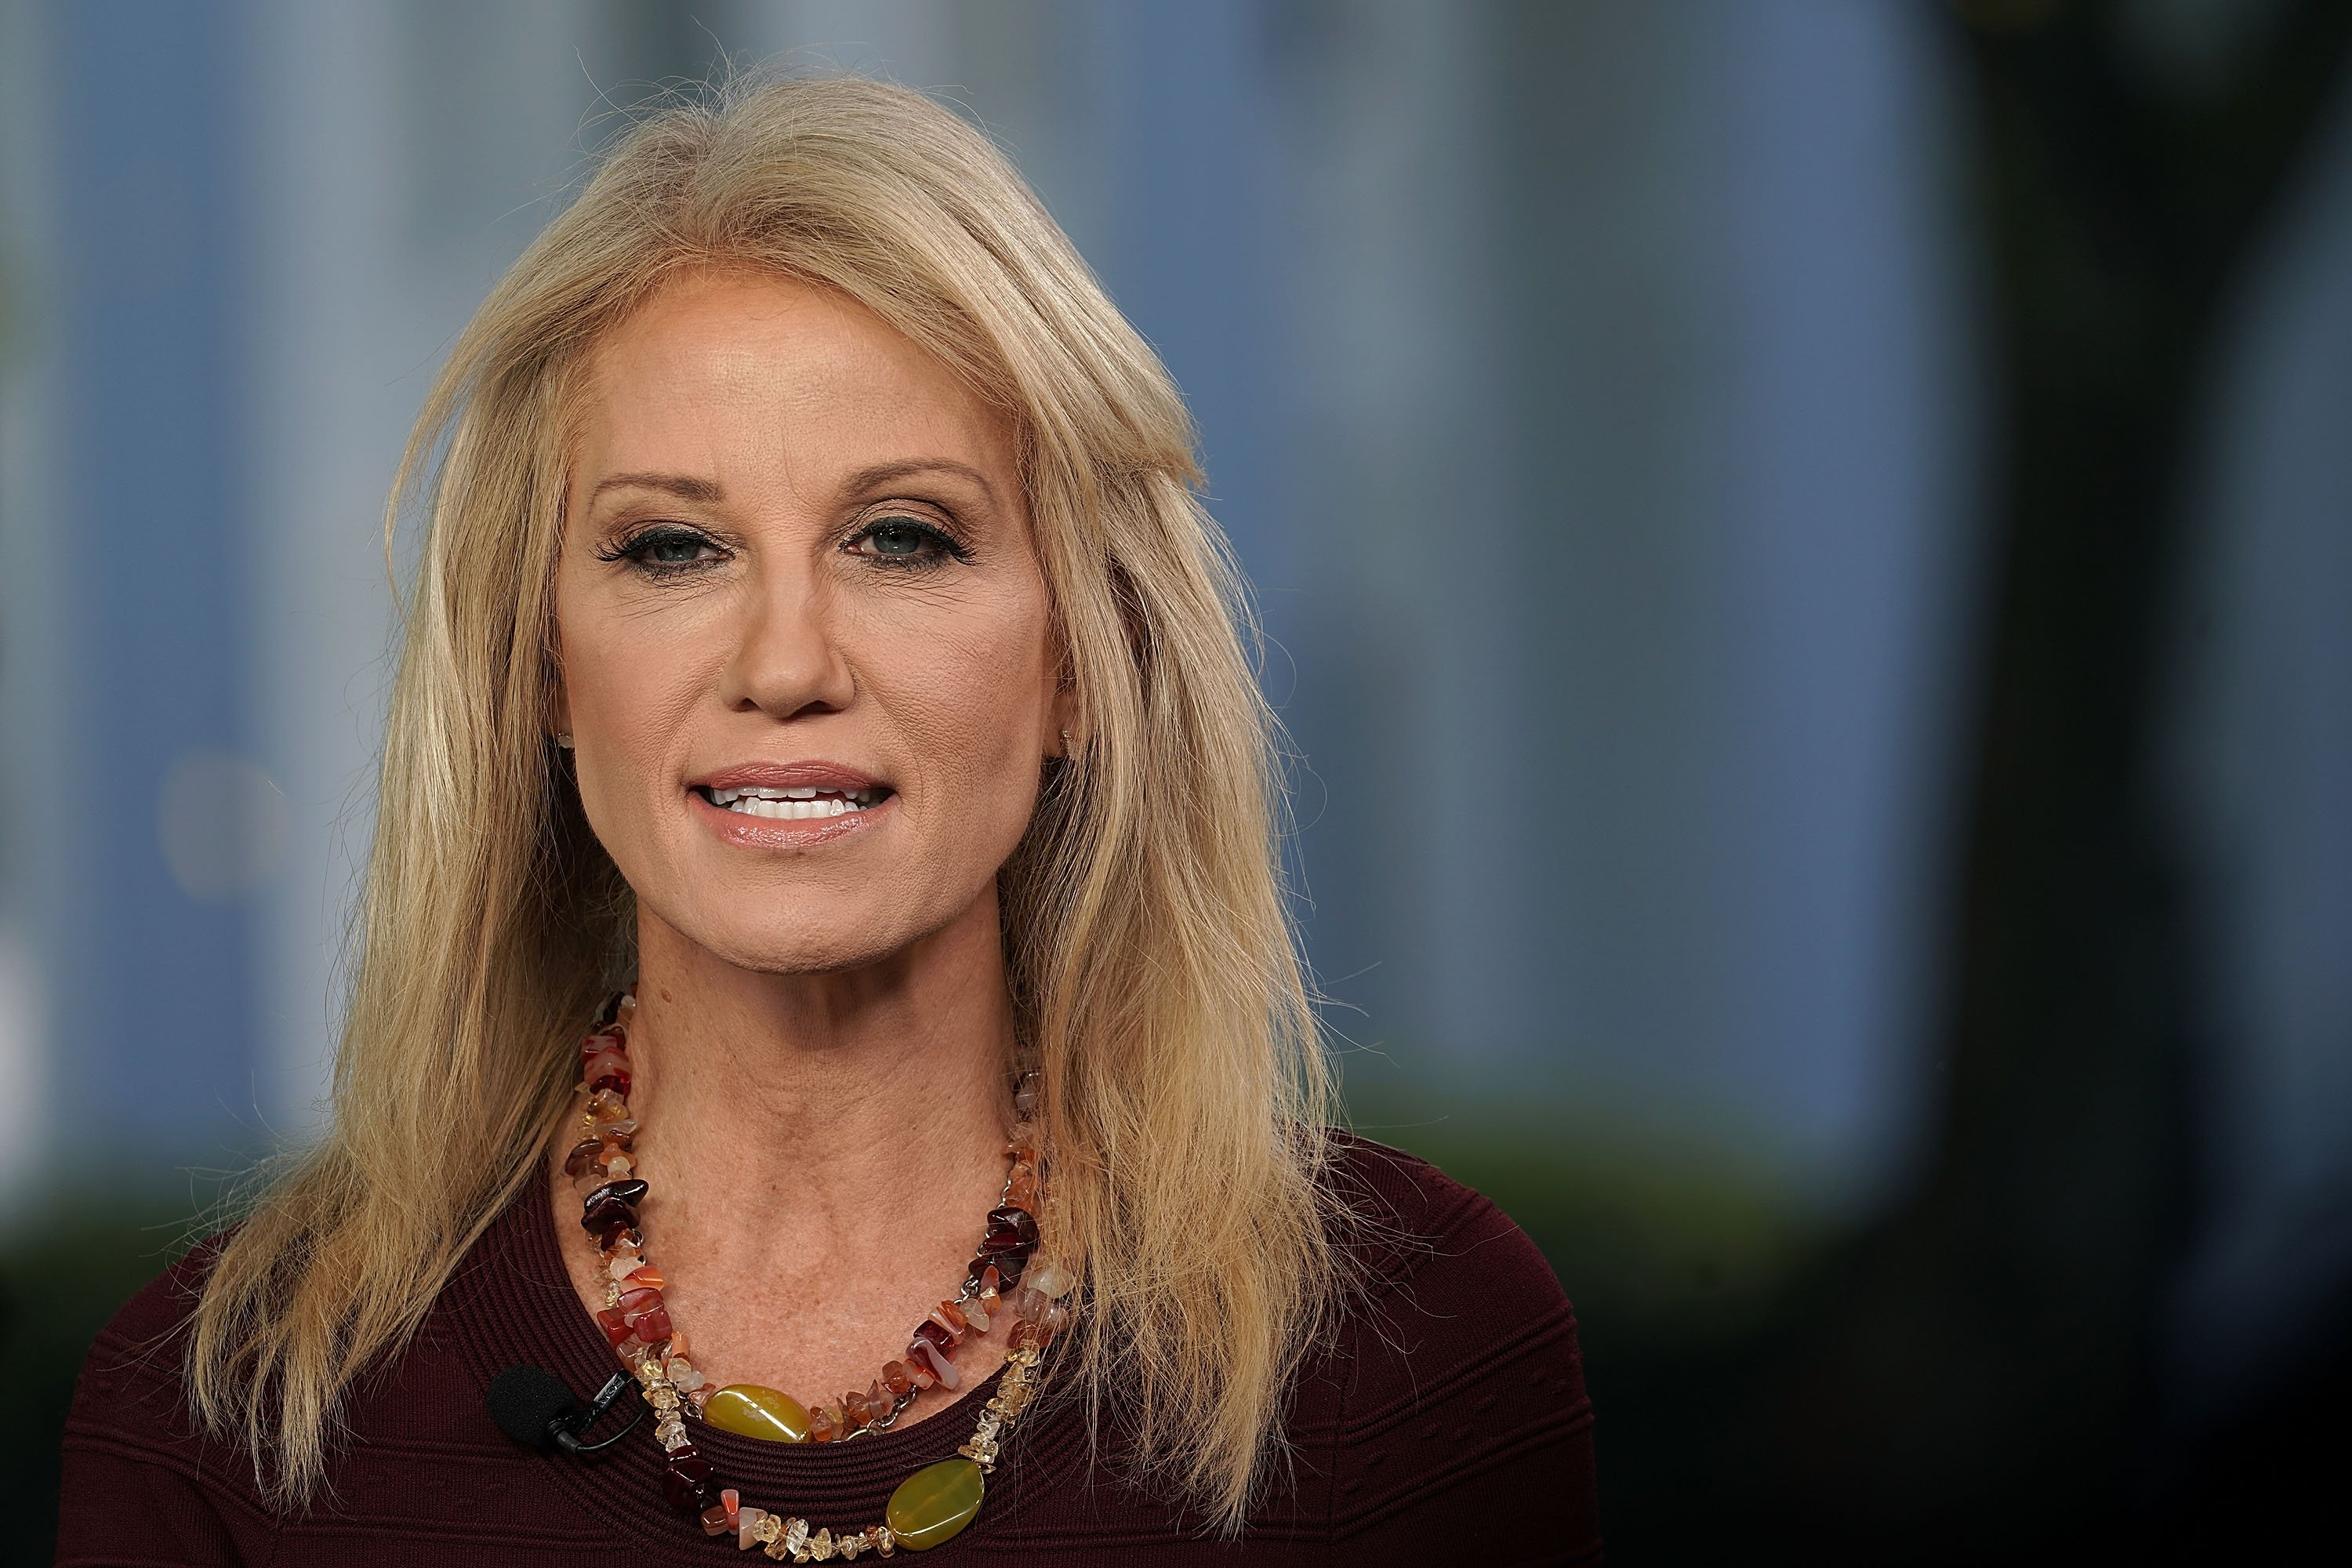 Counselor to U.S. President Donald Trump Kellyanne Conway participates in a TV interview October 3, 2018 at the White House in Washington, DC | Photo: Getty Images